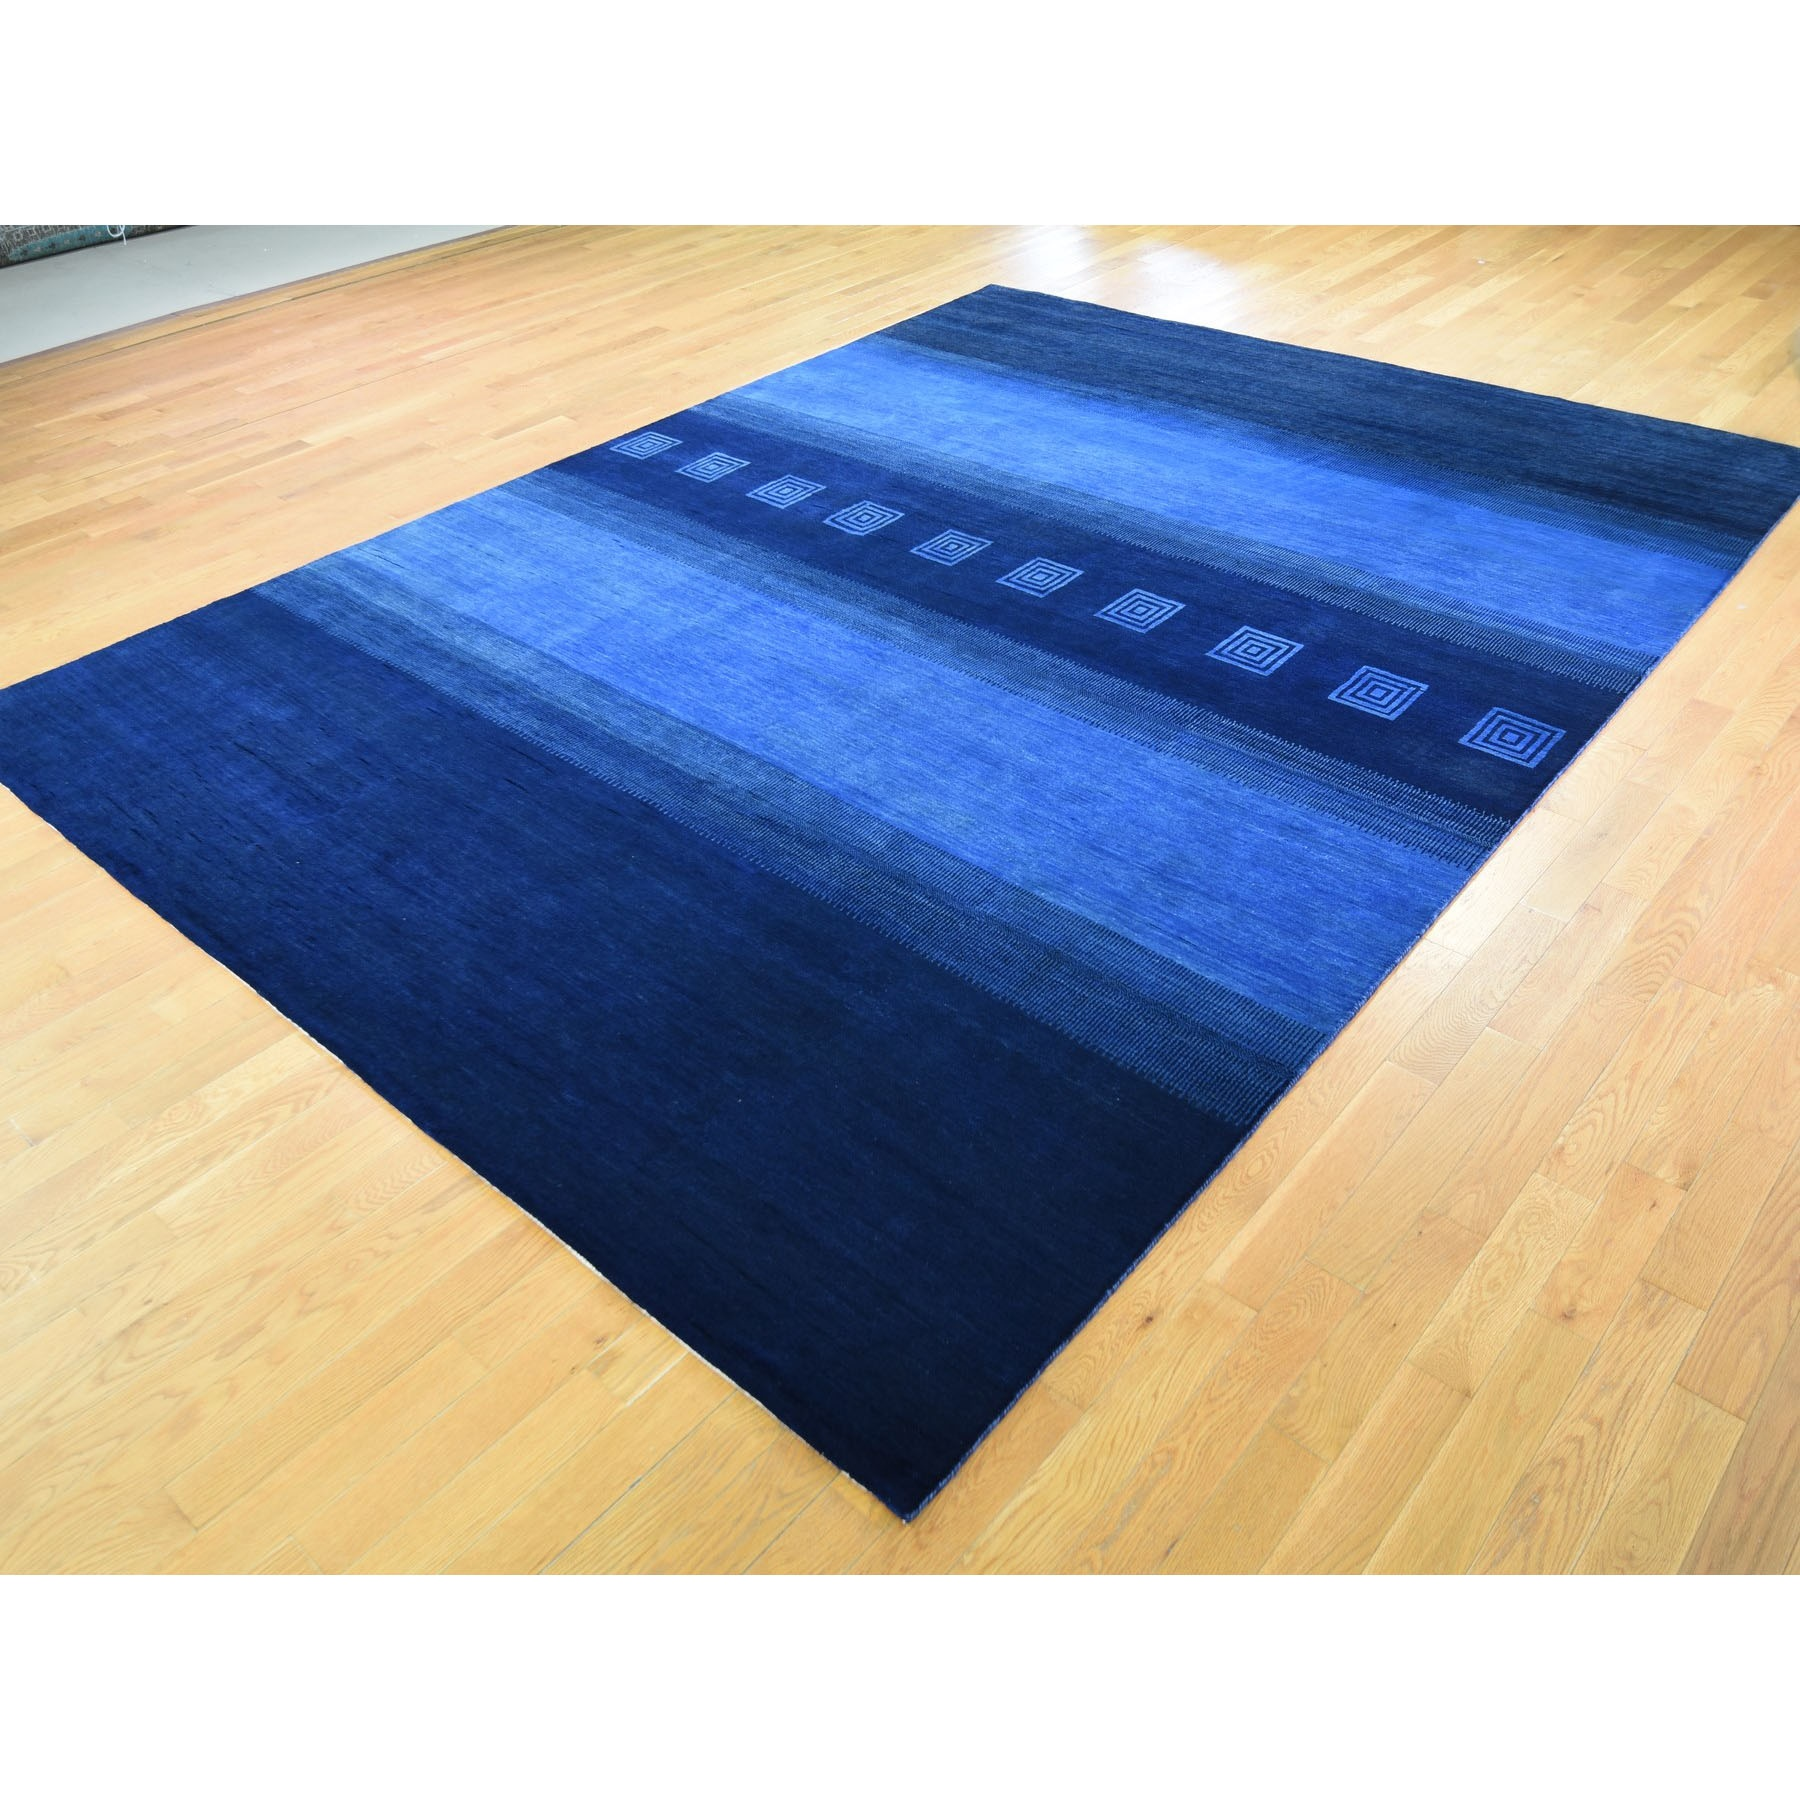 9-1 x12- Blue Pure Wool Lori Buft Gabbeh Thick And Lush Hand Knotted Oriental Rug